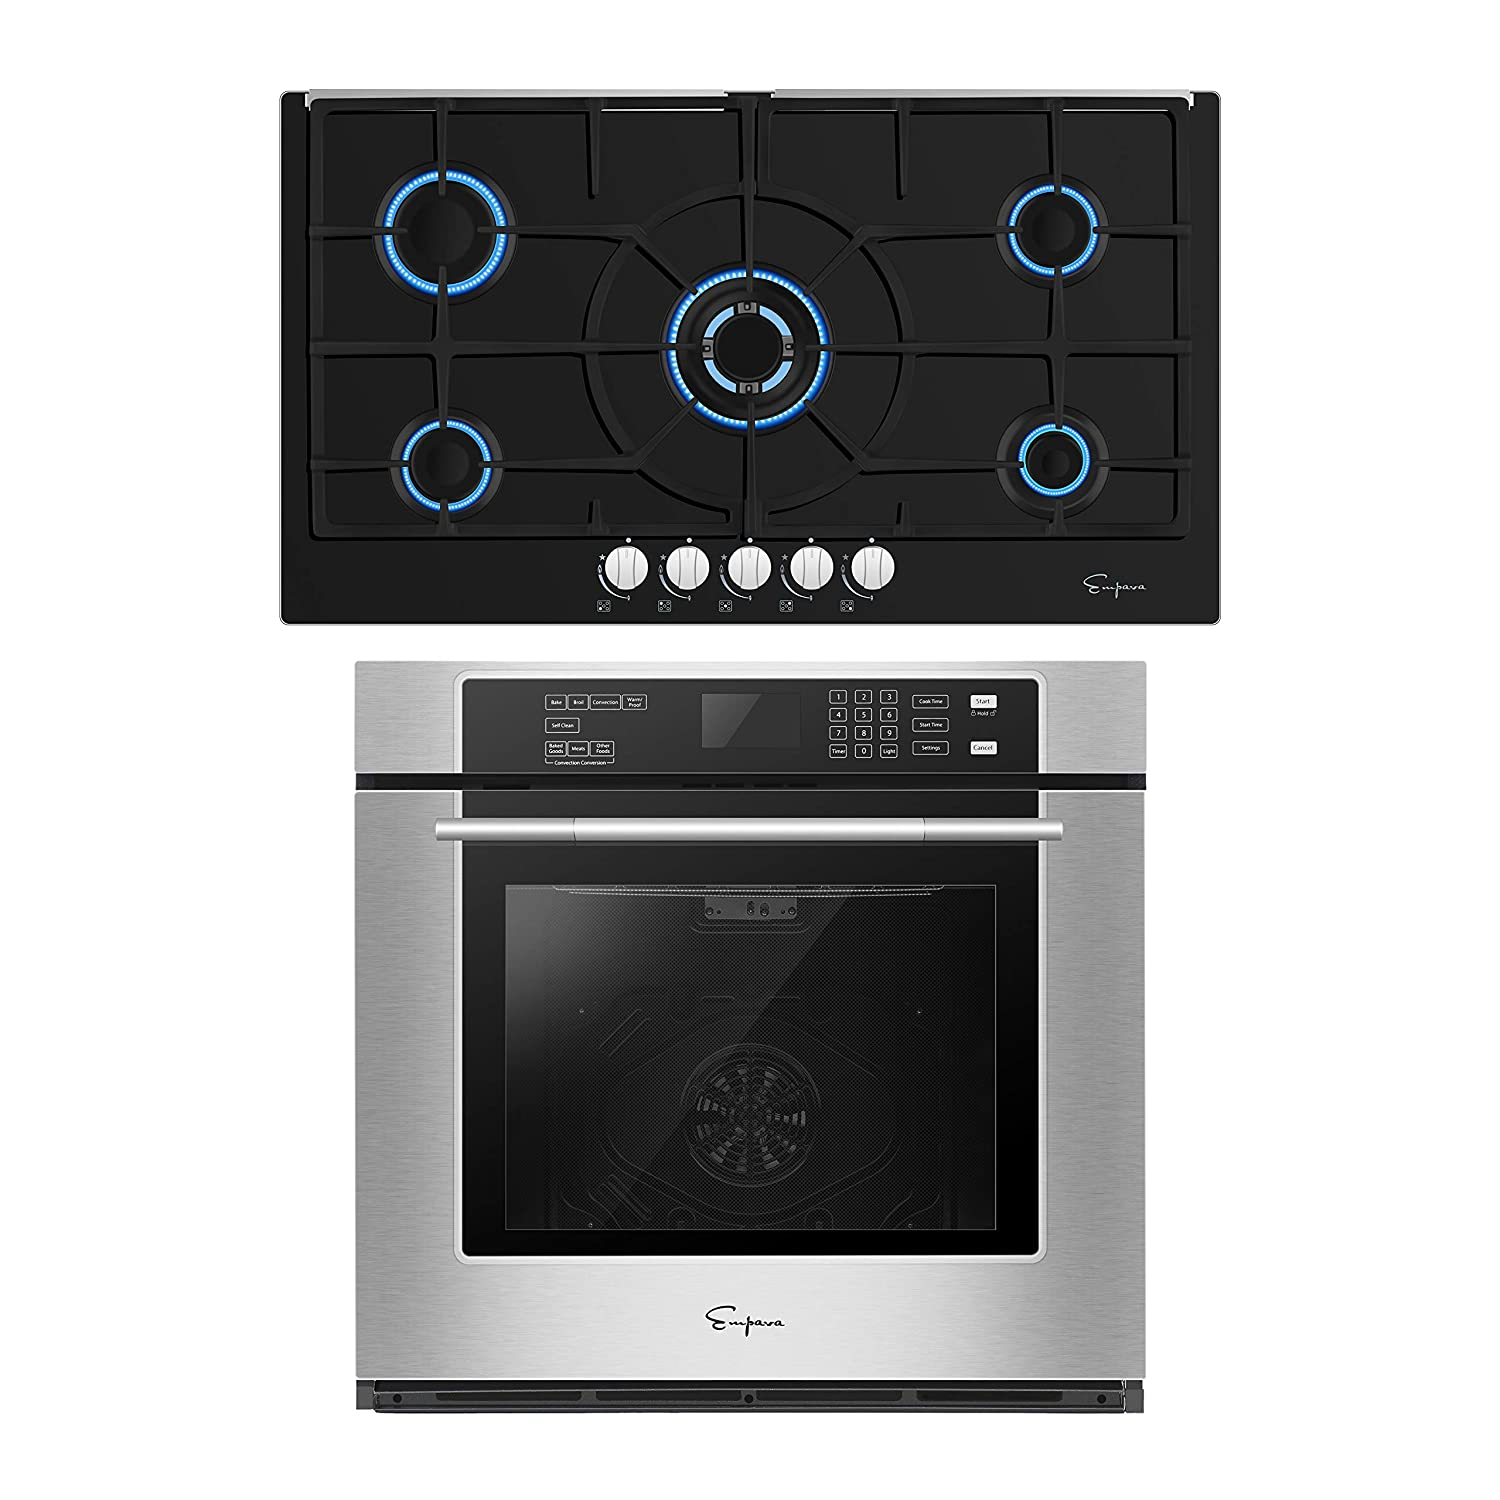 Empava 30 Inch Electric Single Wall Oven with Self-cleaning Convection Fan and 36 Inch Gas Cooktop Stove LPG/NG Convertible with 5 Italy SABAF Burners in Tempered Glass